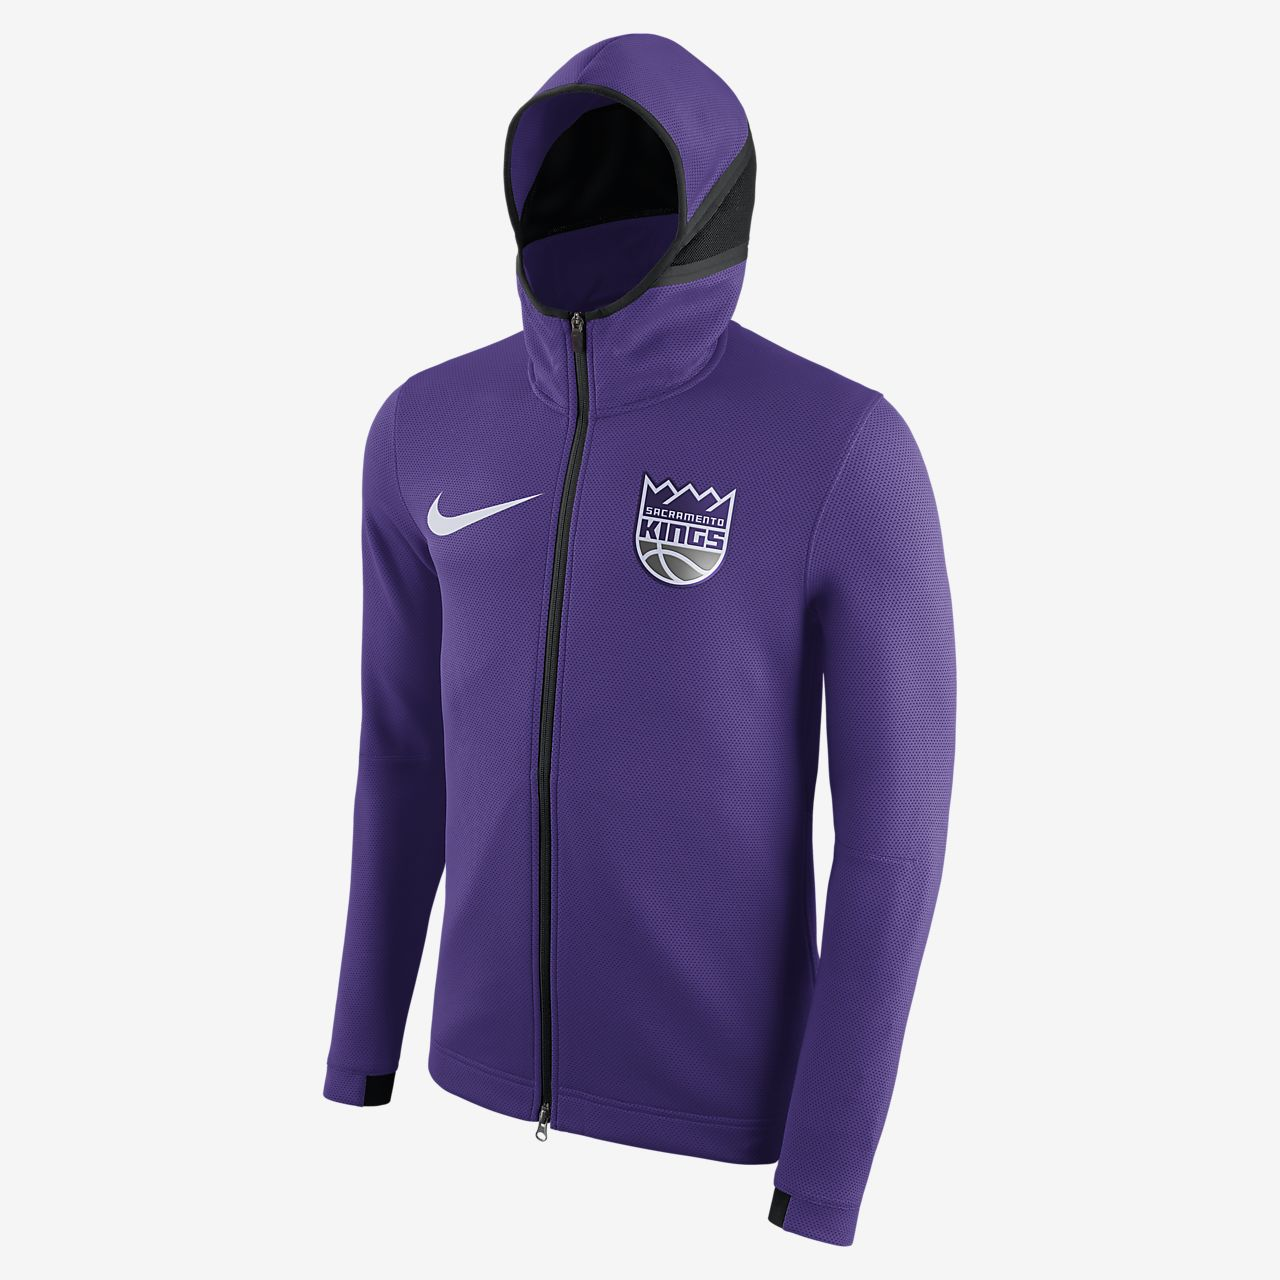 Mens purple nike jacket